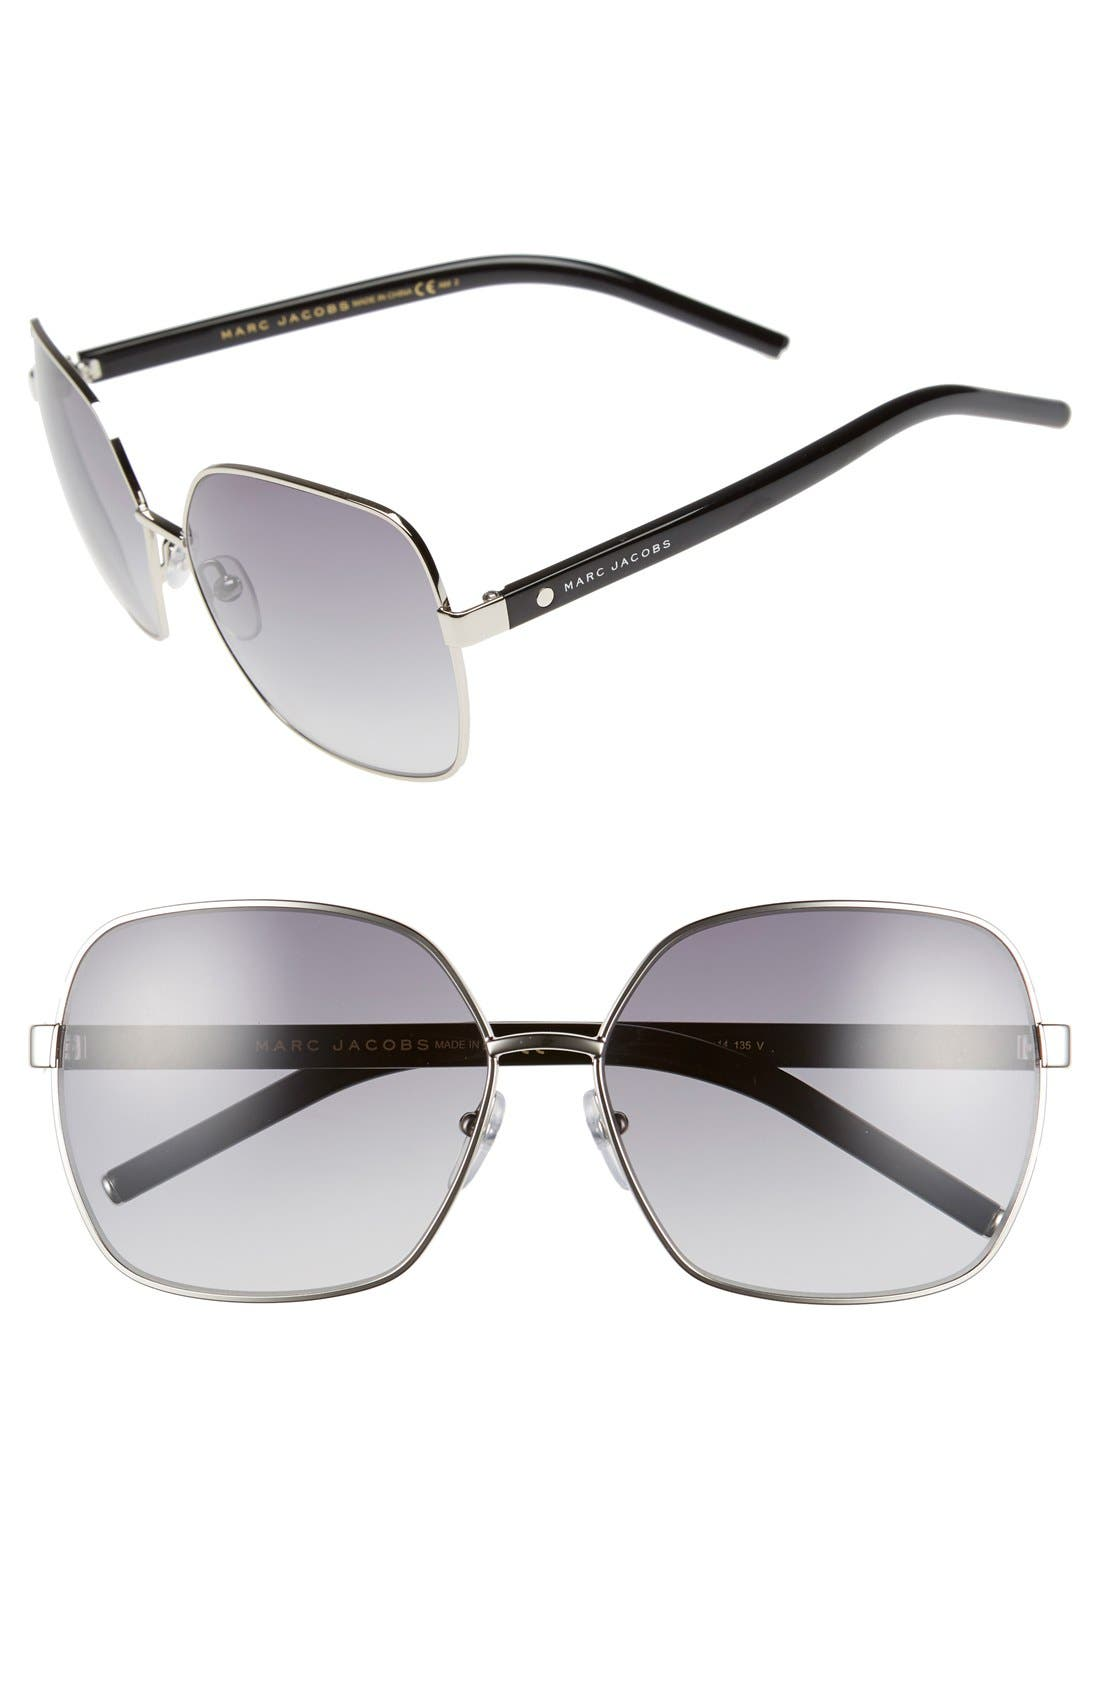 Main Image - MARC JACOBS 61mm Oversized Sunglasses